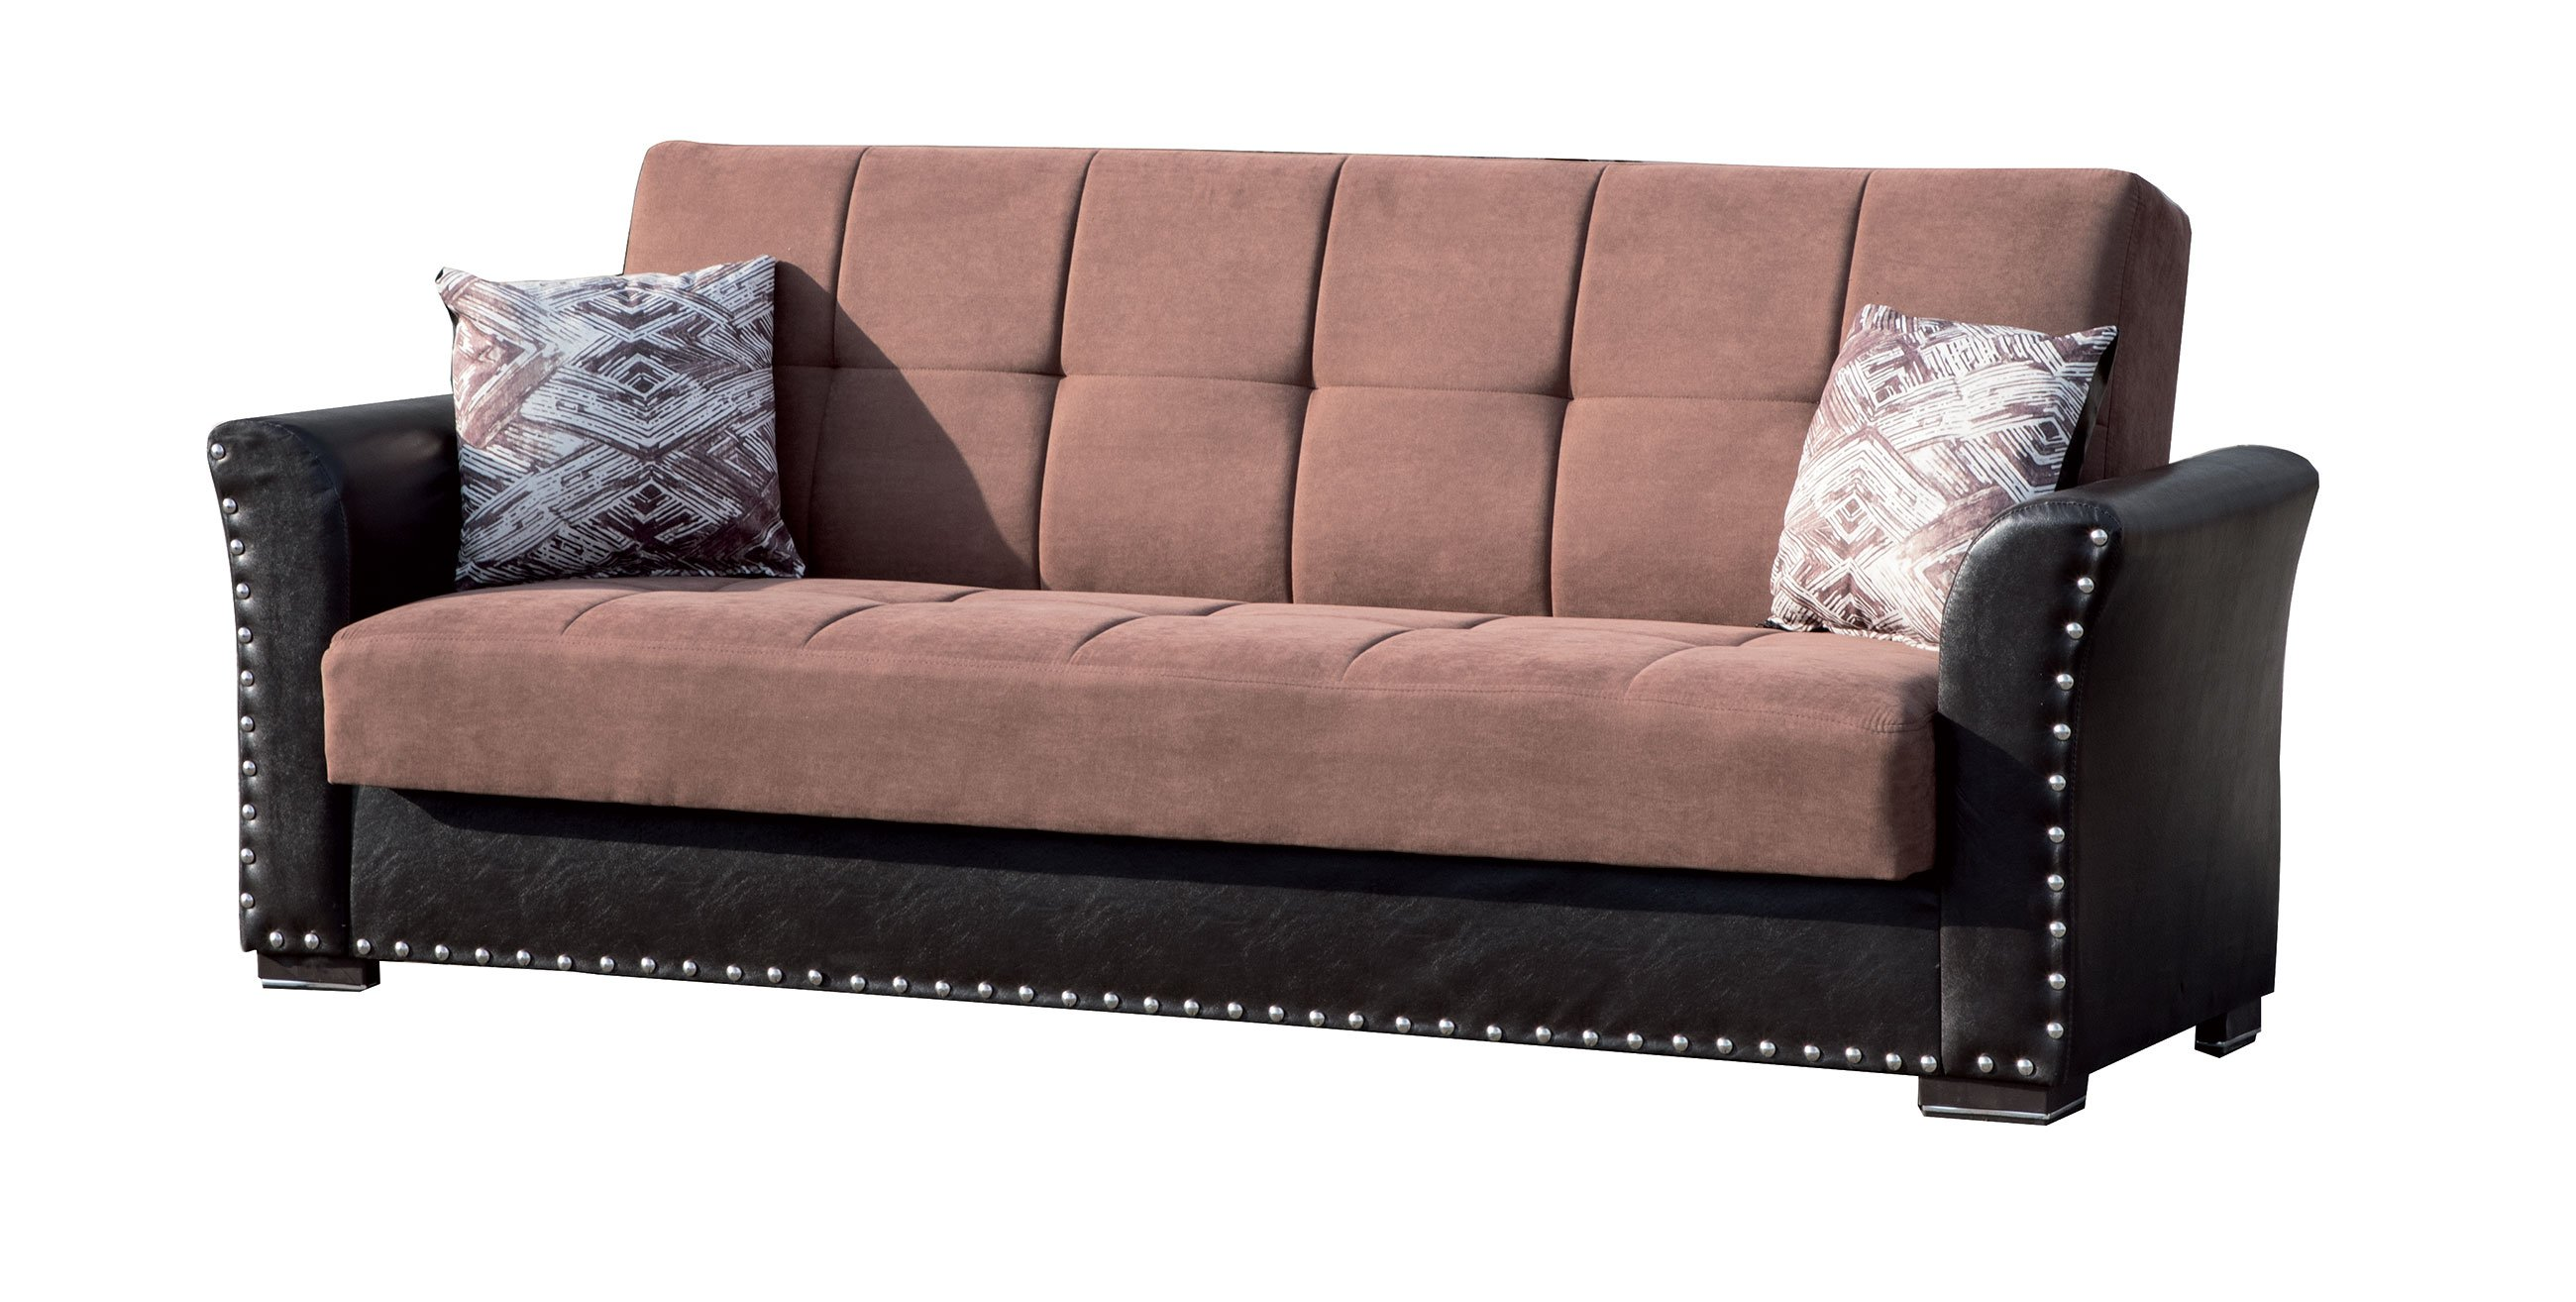 Swell Diva Brown Fabric Convertible Sofa Bed By Casamode Inzonedesignstudio Interior Chair Design Inzonedesignstudiocom